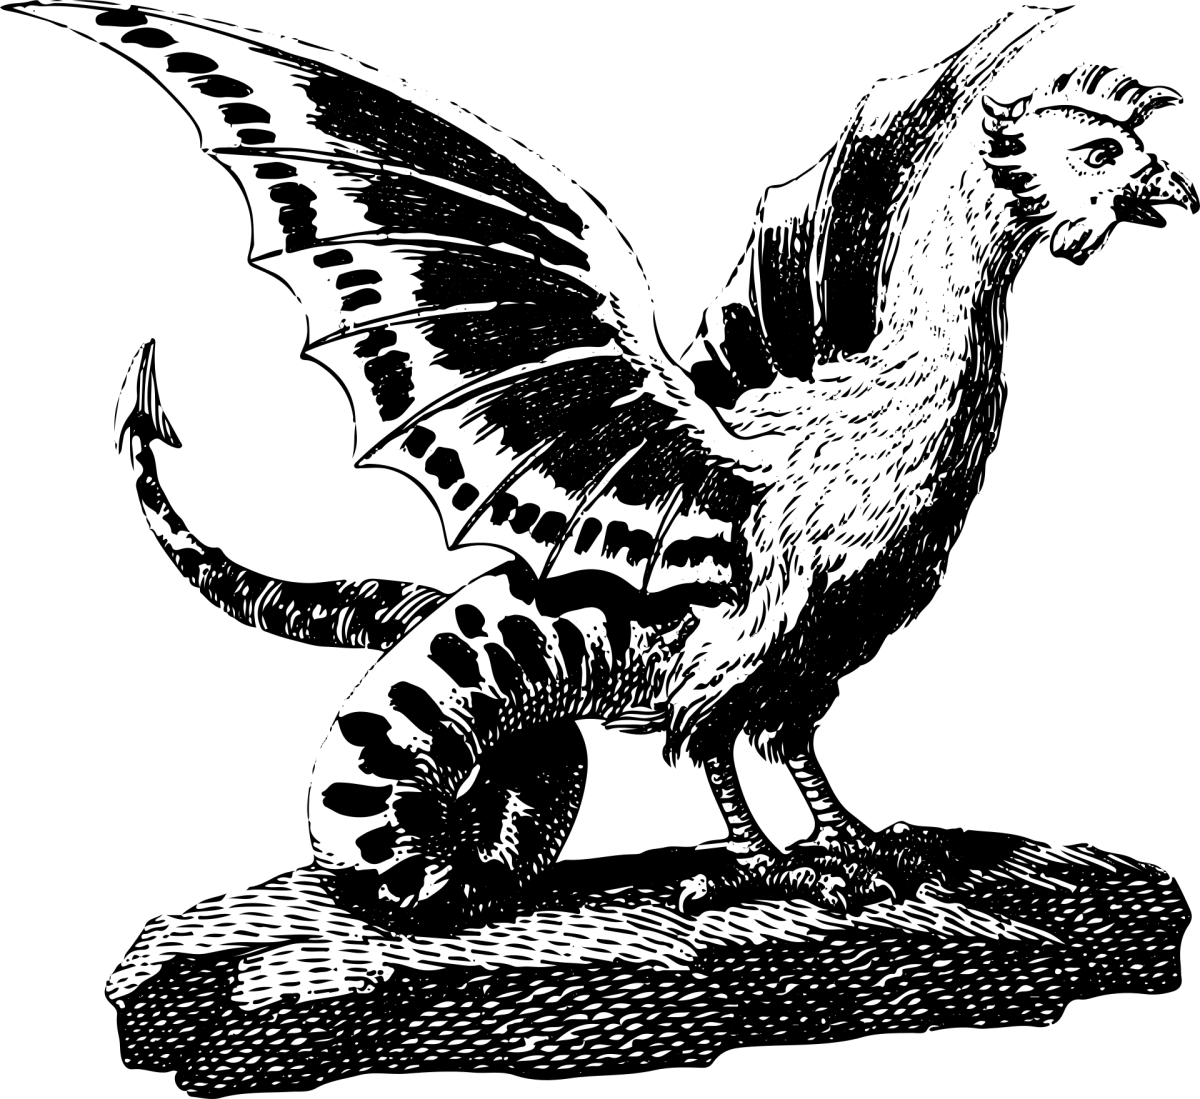 A basilisk is also known as a cockatrice.